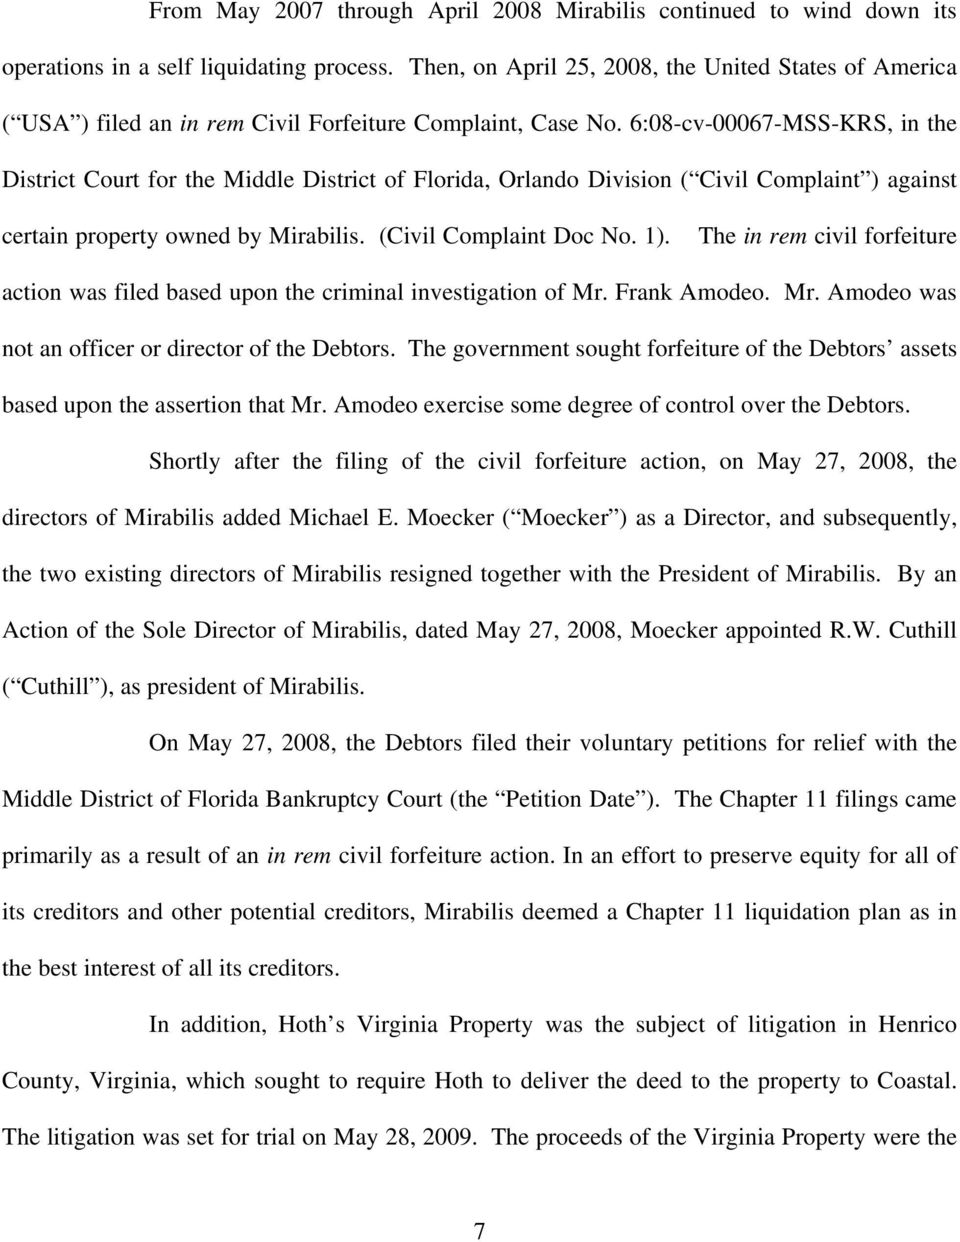 6:08-cv-00067-MSS-KRS, in the District Court for the Middle District of Florida, Orlando Division ( Civil Complaint ) against certain property owned by Mirabilis. (Civil Complaint Doc No. 1).